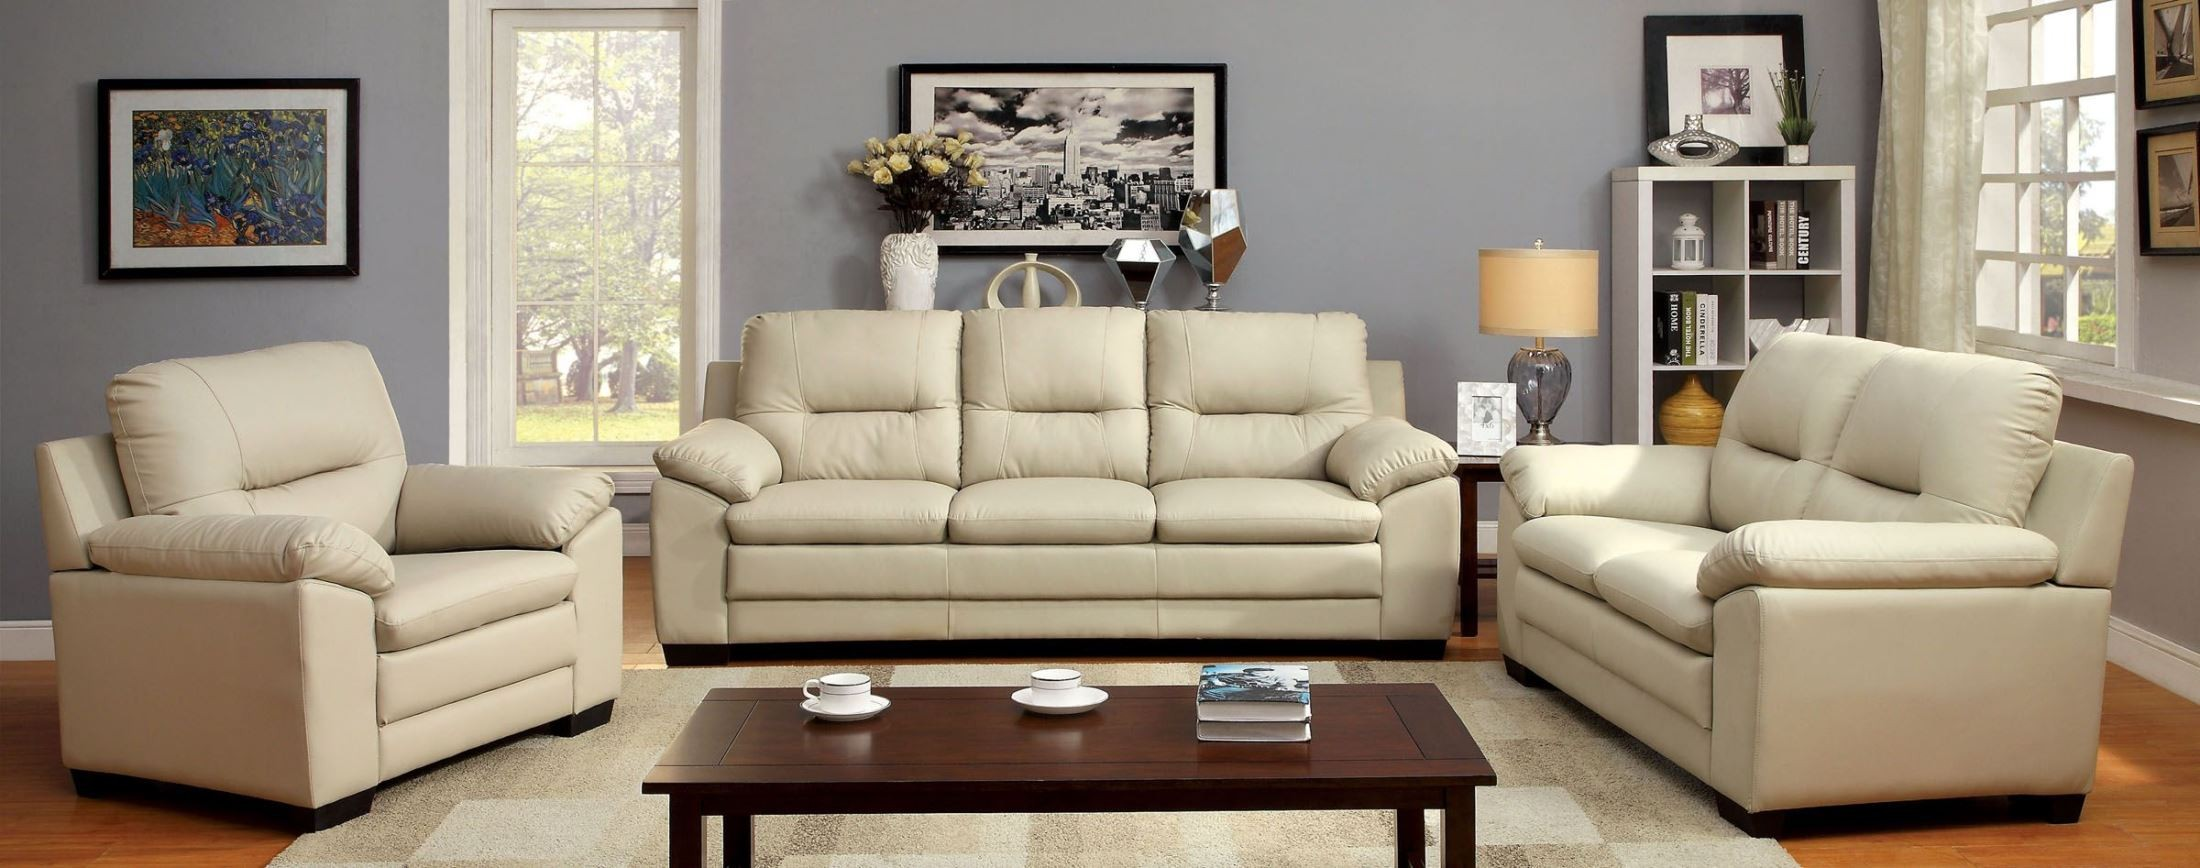 Furniture Of America Parma Ivory Leatherette Living Room